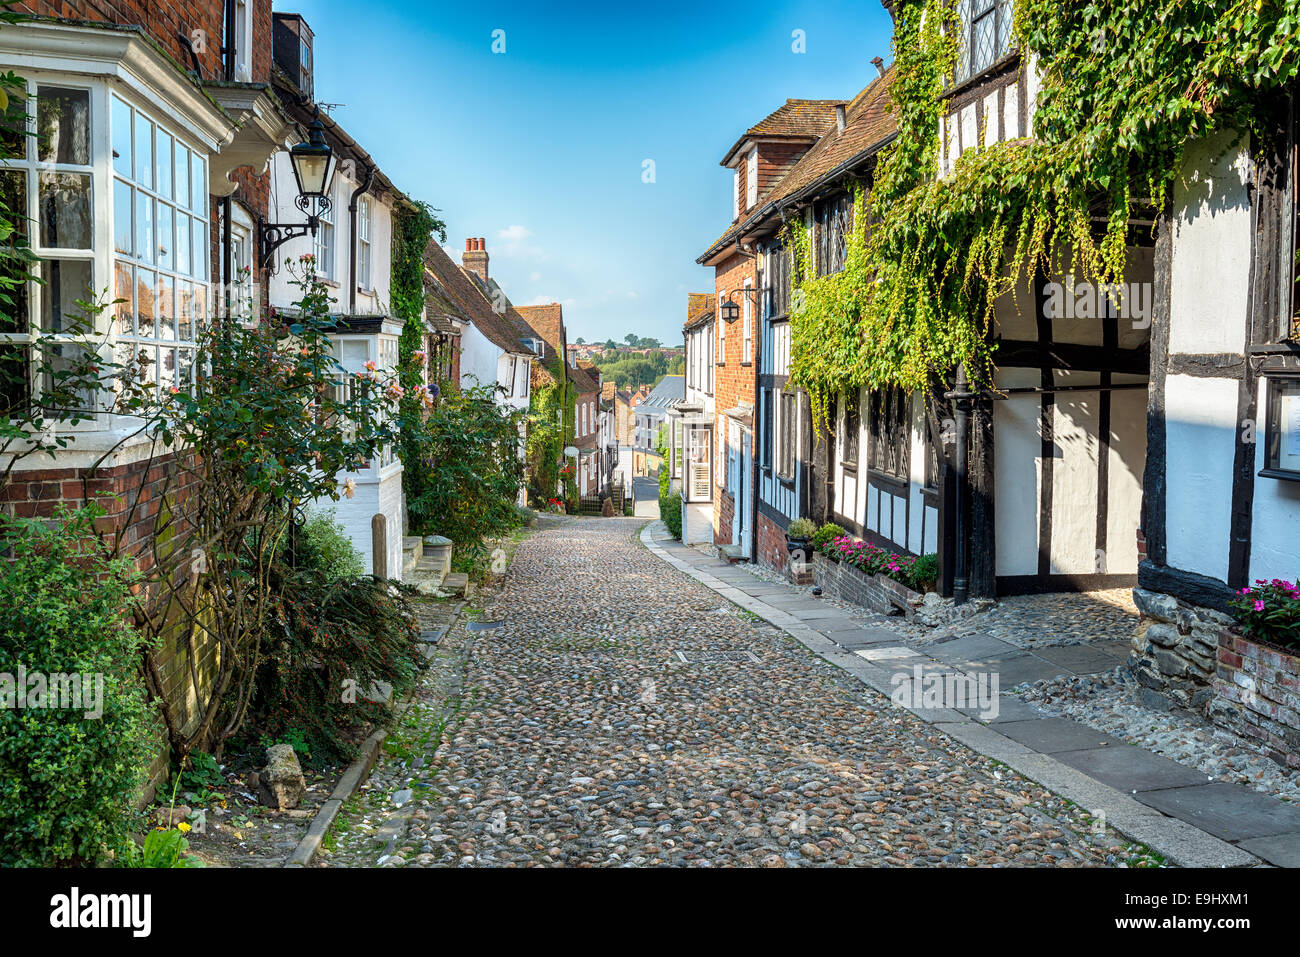 Beautiful old half timbered Tudor style houses on a cobbled street in Rye, East Sussex - Stock Image